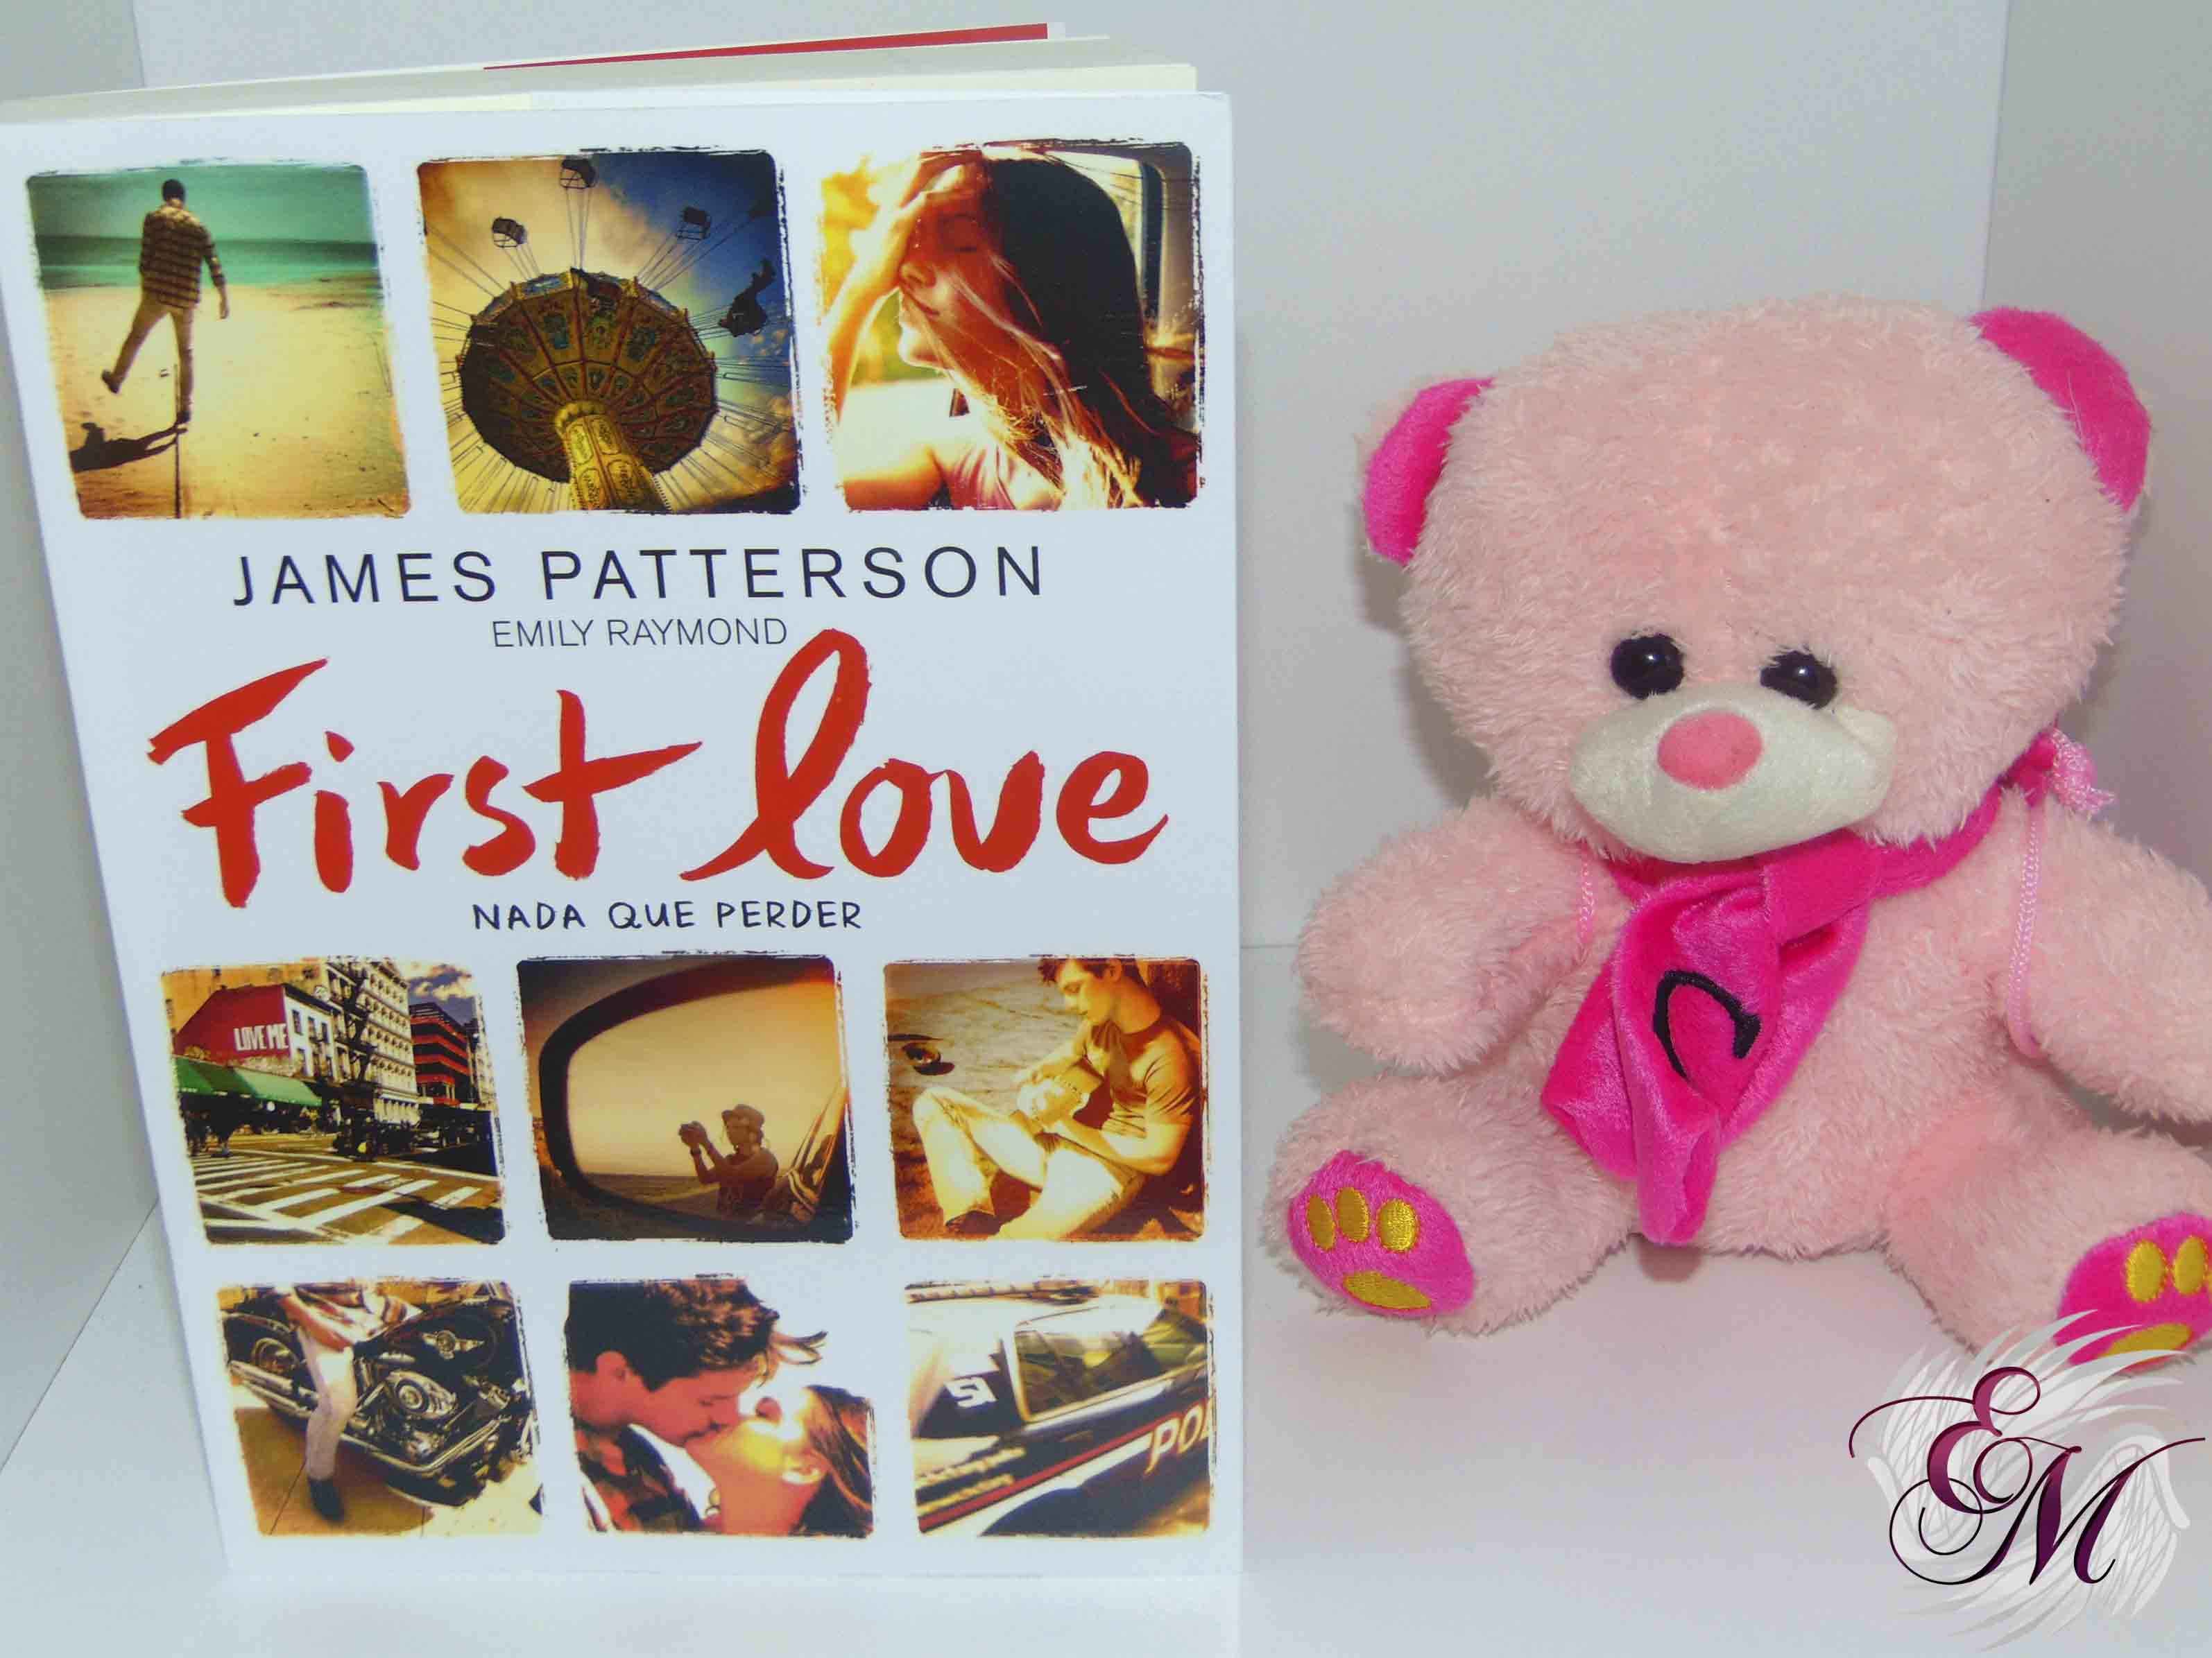 First love, de James Patterson/Emily Raymond - Reseña